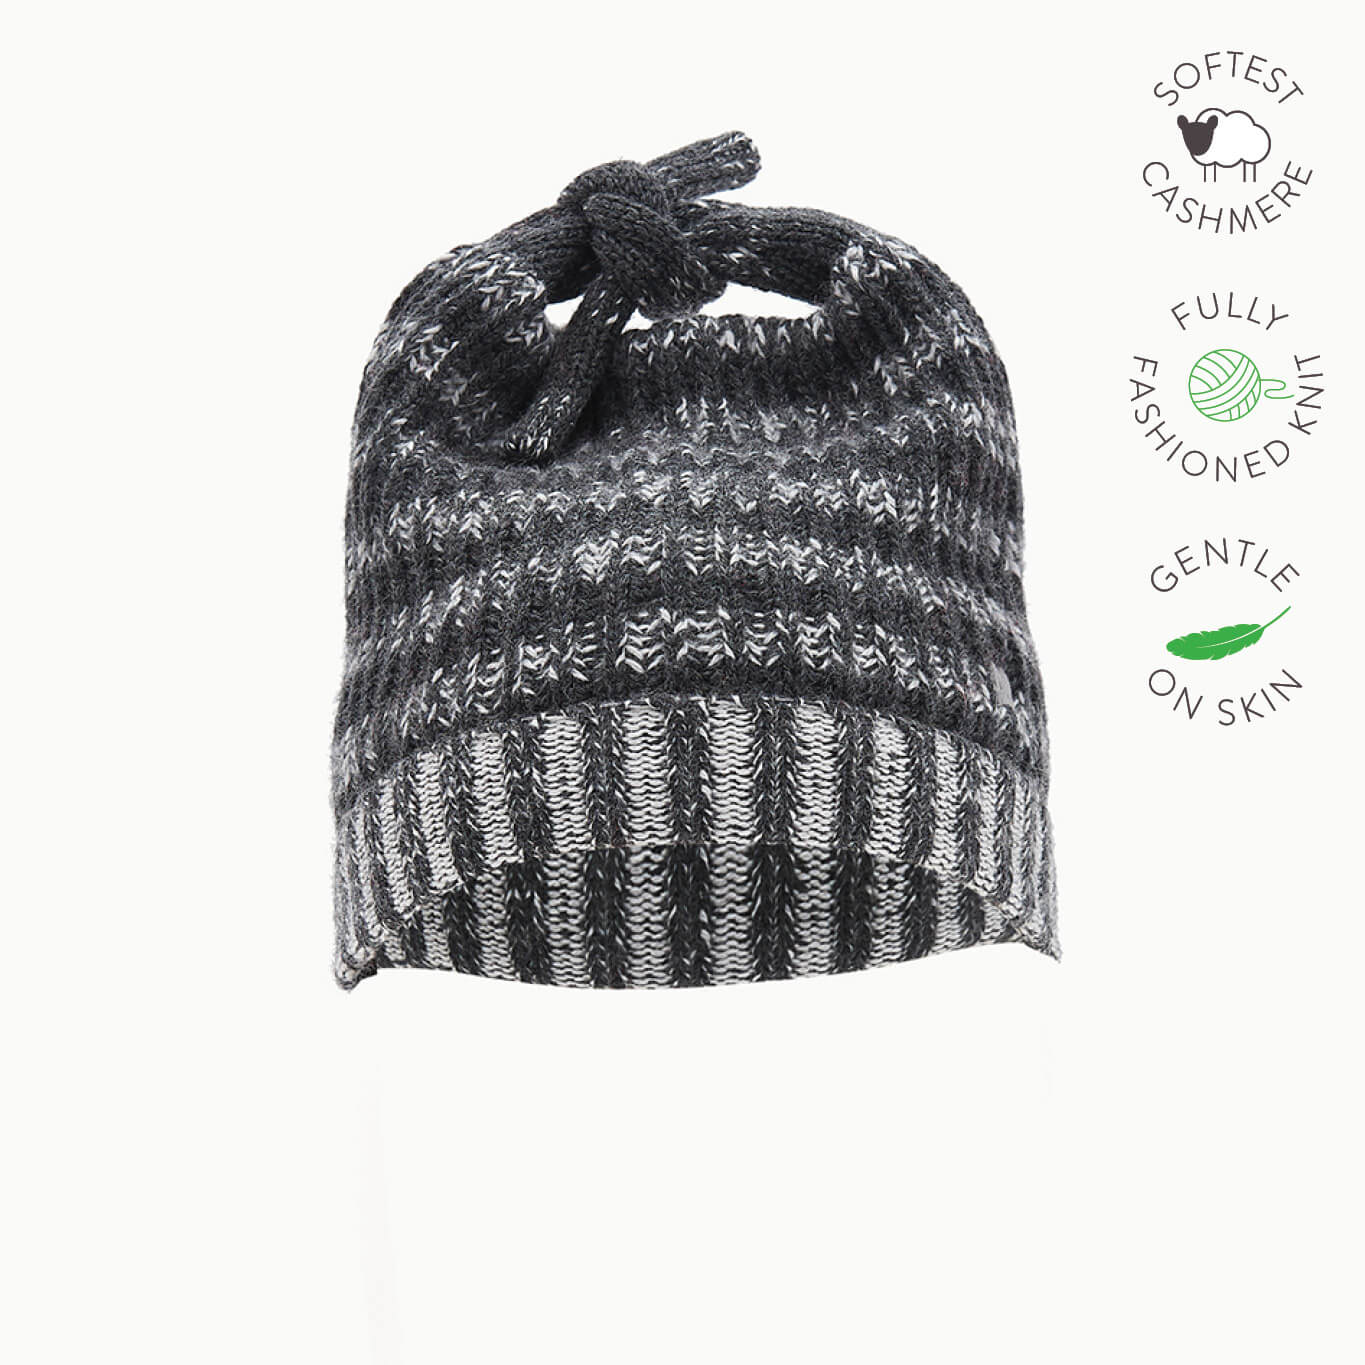 JOHN - Kids Chunky Knitted Hat  - MONOCHROME